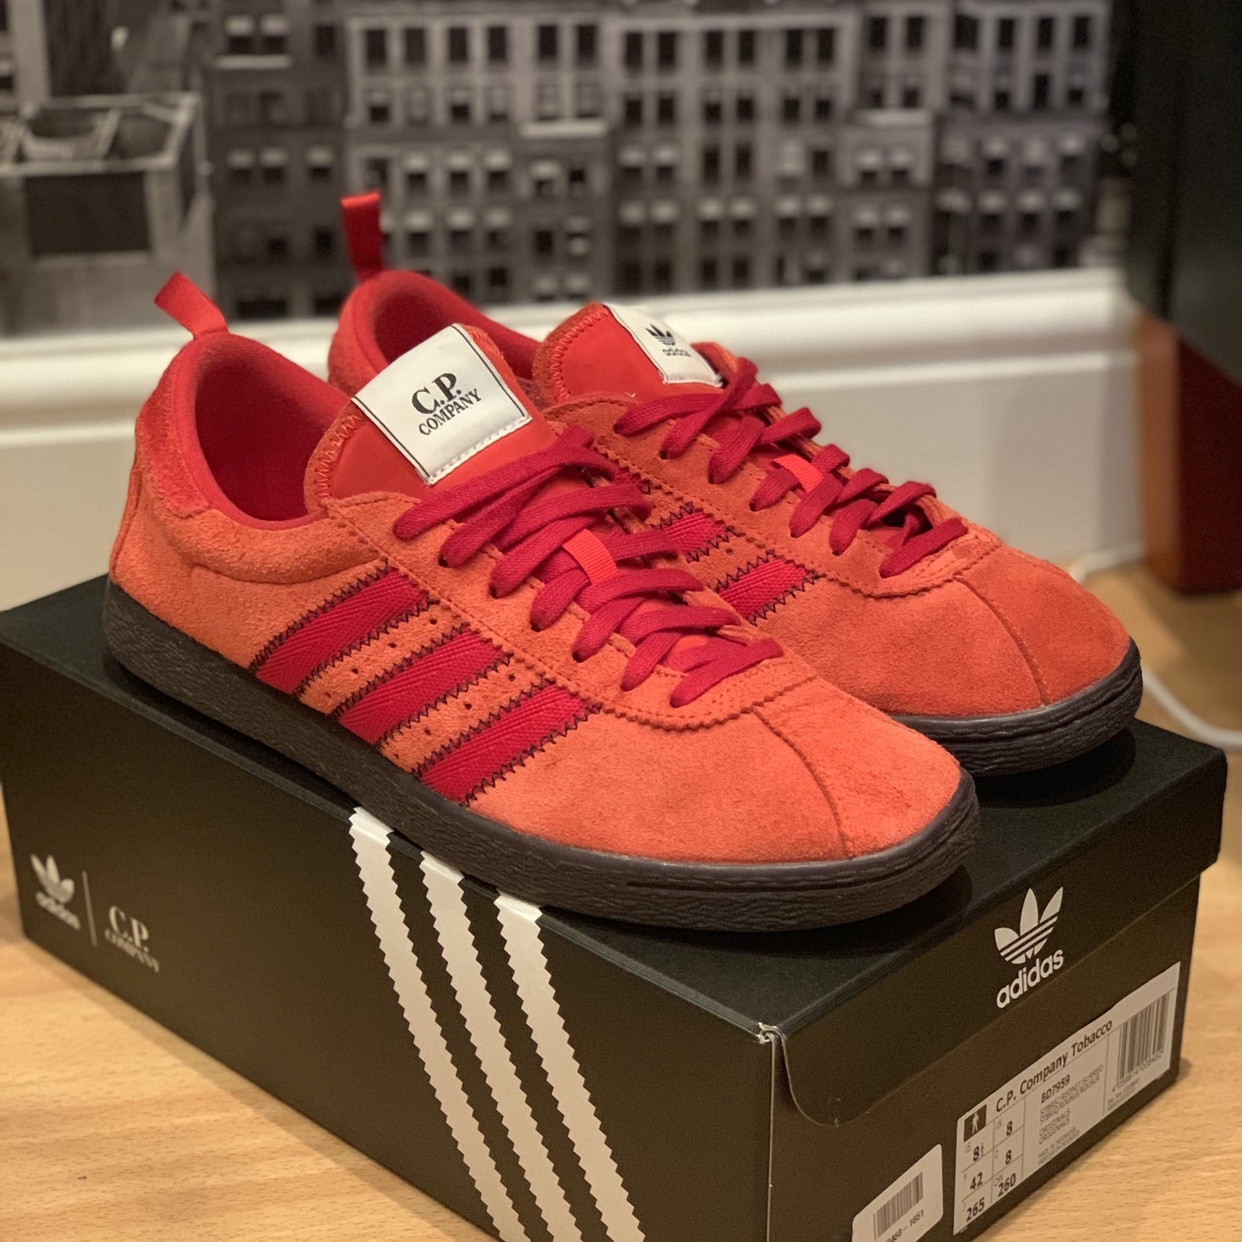 on sale 4d0eb a2707 Adidas x Cp Company Tobacco trainers, very sought... - Depop